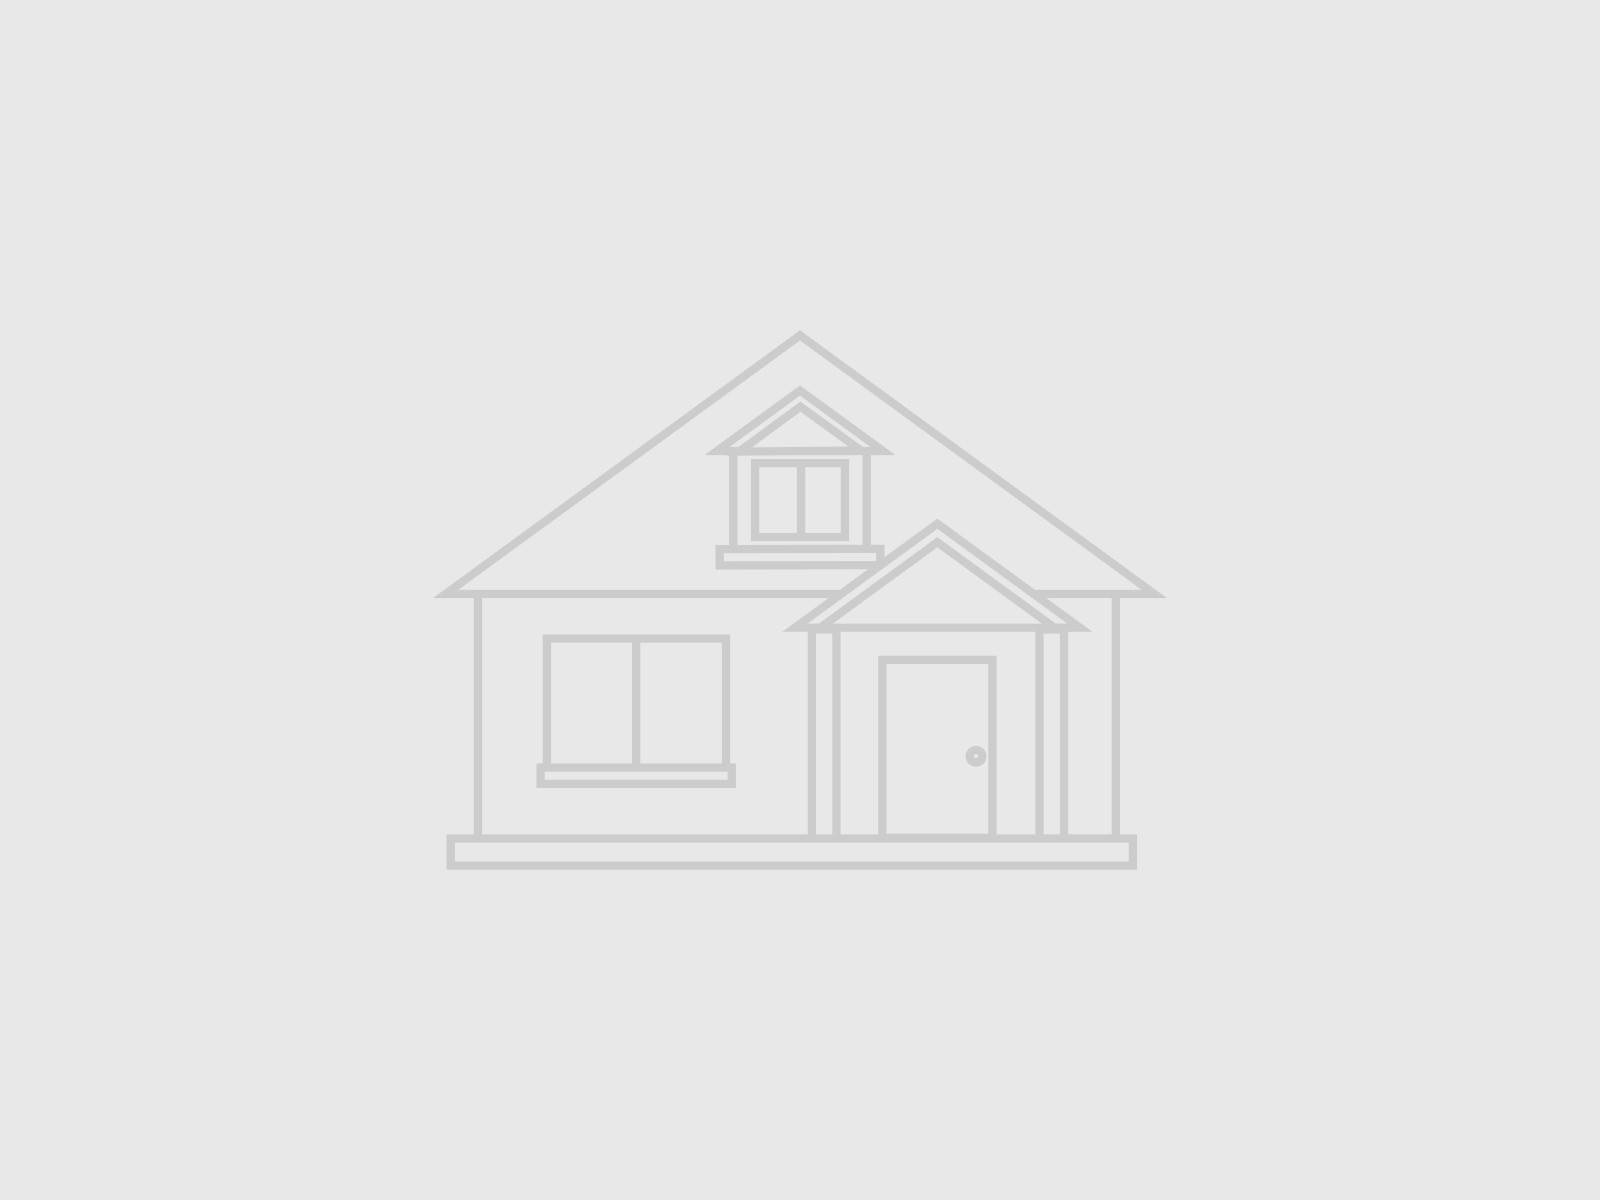 Single Family Homes for Sale at 1833 N Garey Avenue Pomona, California 91767 United States